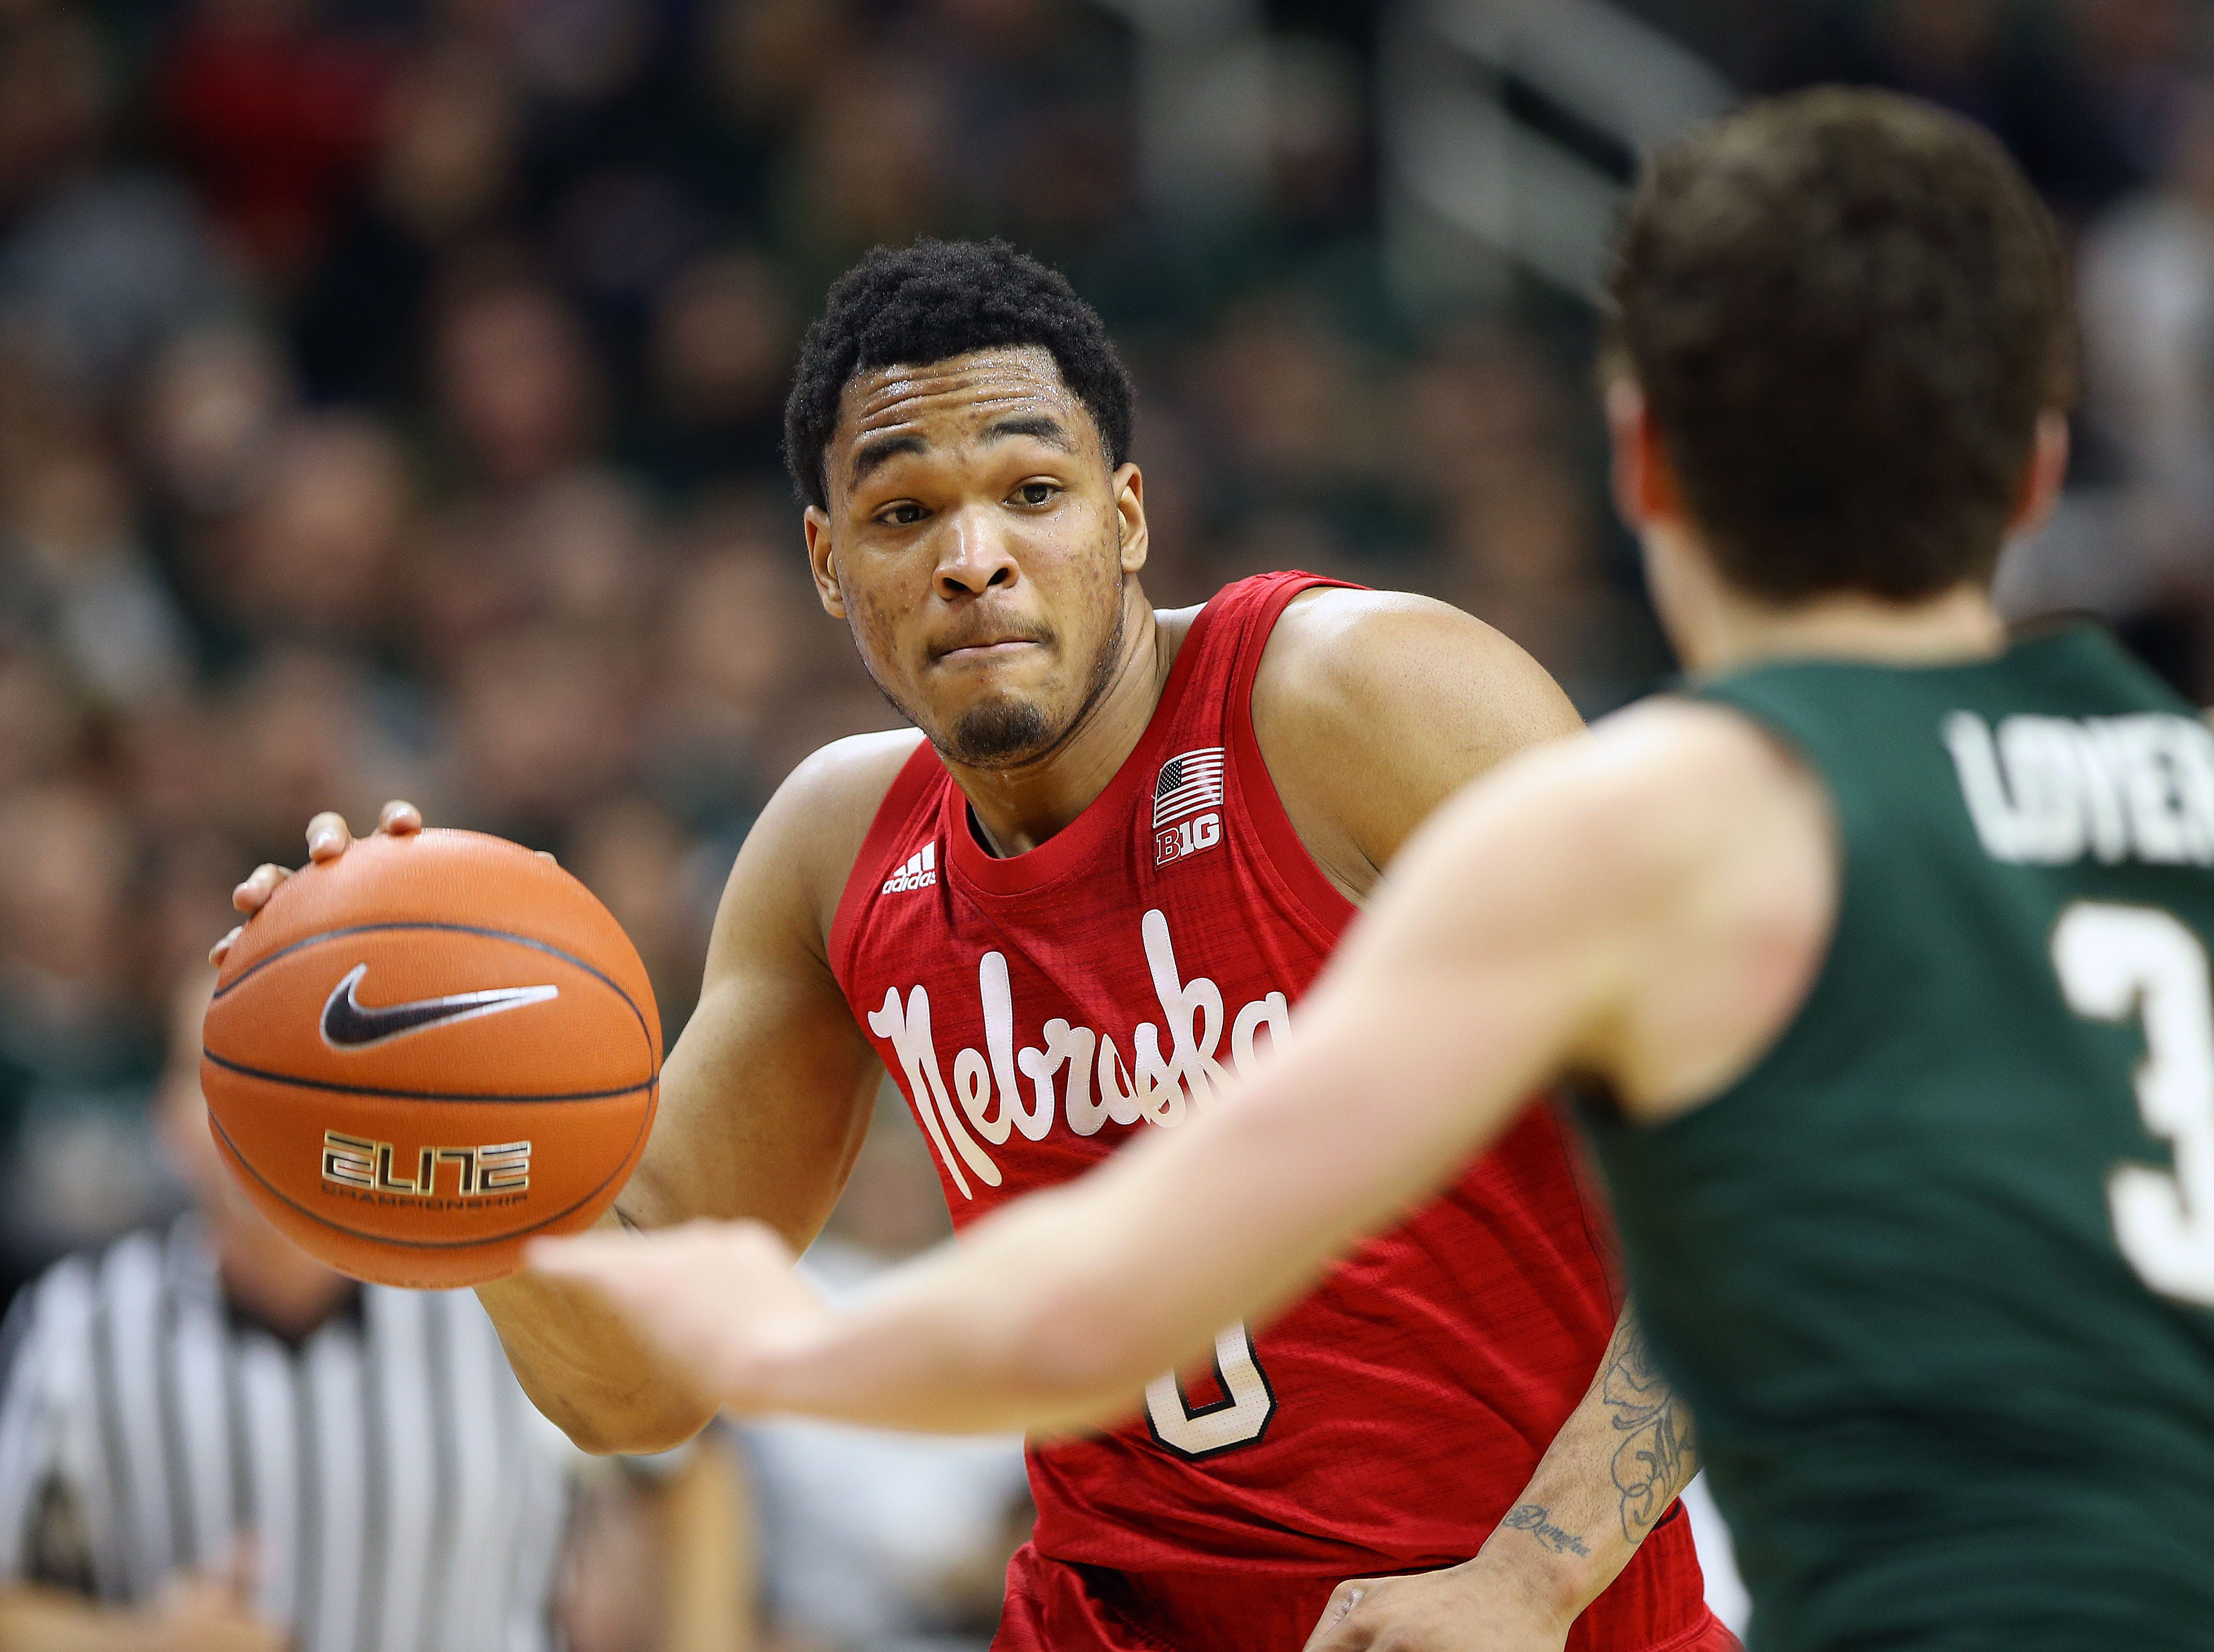 Mar 5, 2019; East Lansing, MI, USA; Nebraska Cornhuskers guard James Palmer Jr. (0) is defended by Michigan State Spartans guard Foster Loyer (3) during the first half of a game at the Breslin Center. Mandatory Credit: Mike Carter-USA TODAY Sports